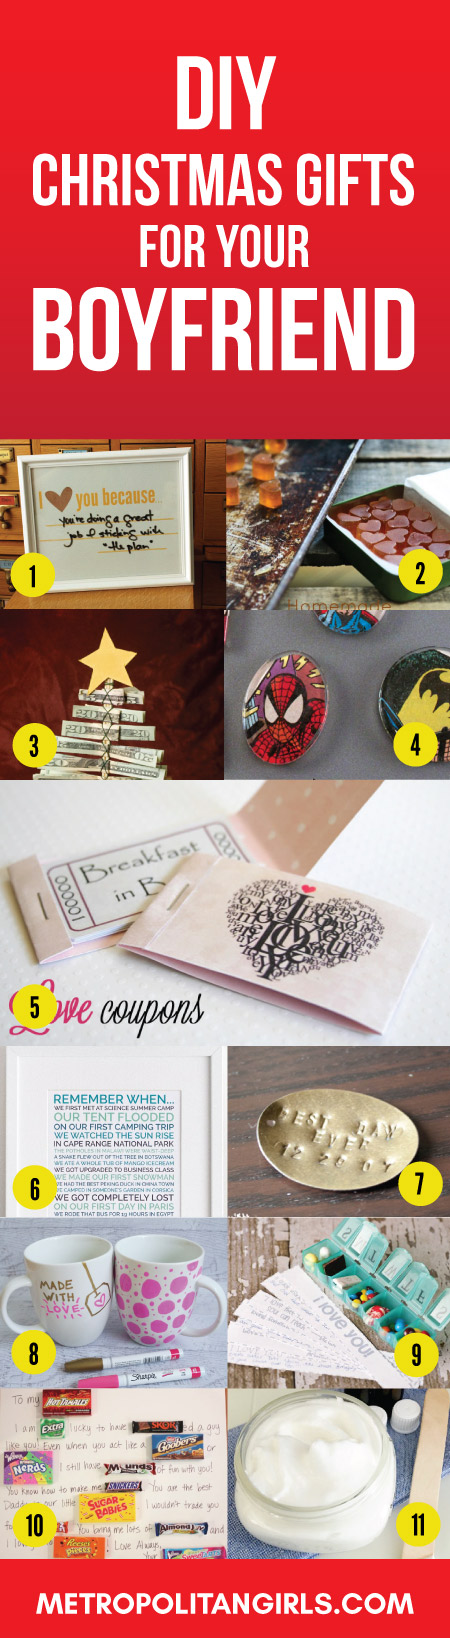 2017 diy christmas gift ideas for boyfriend